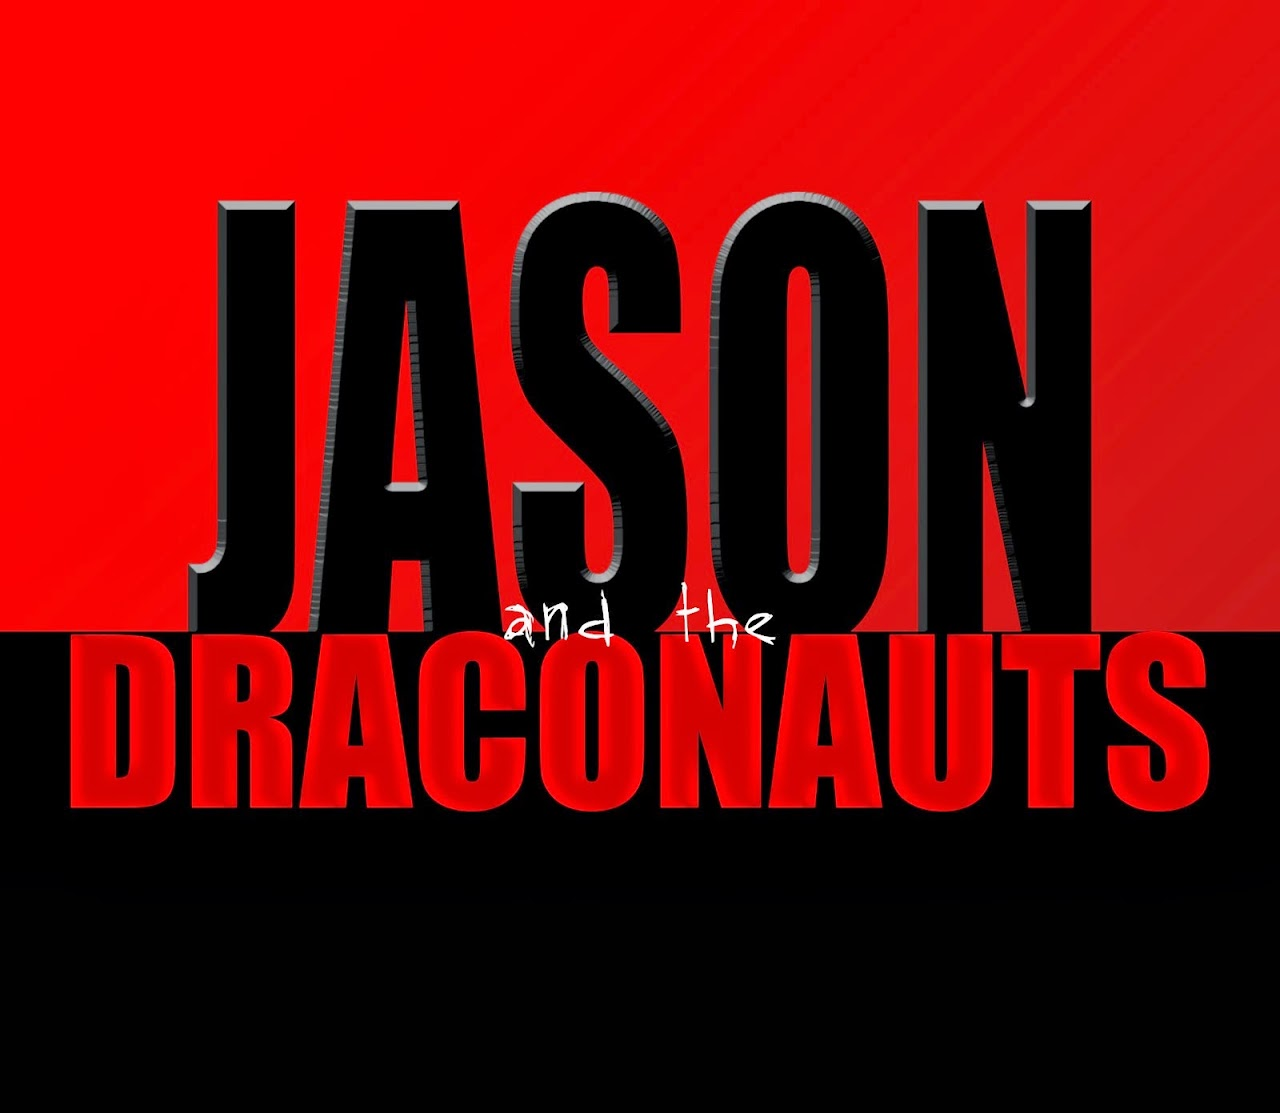 Jason and the Draconauts